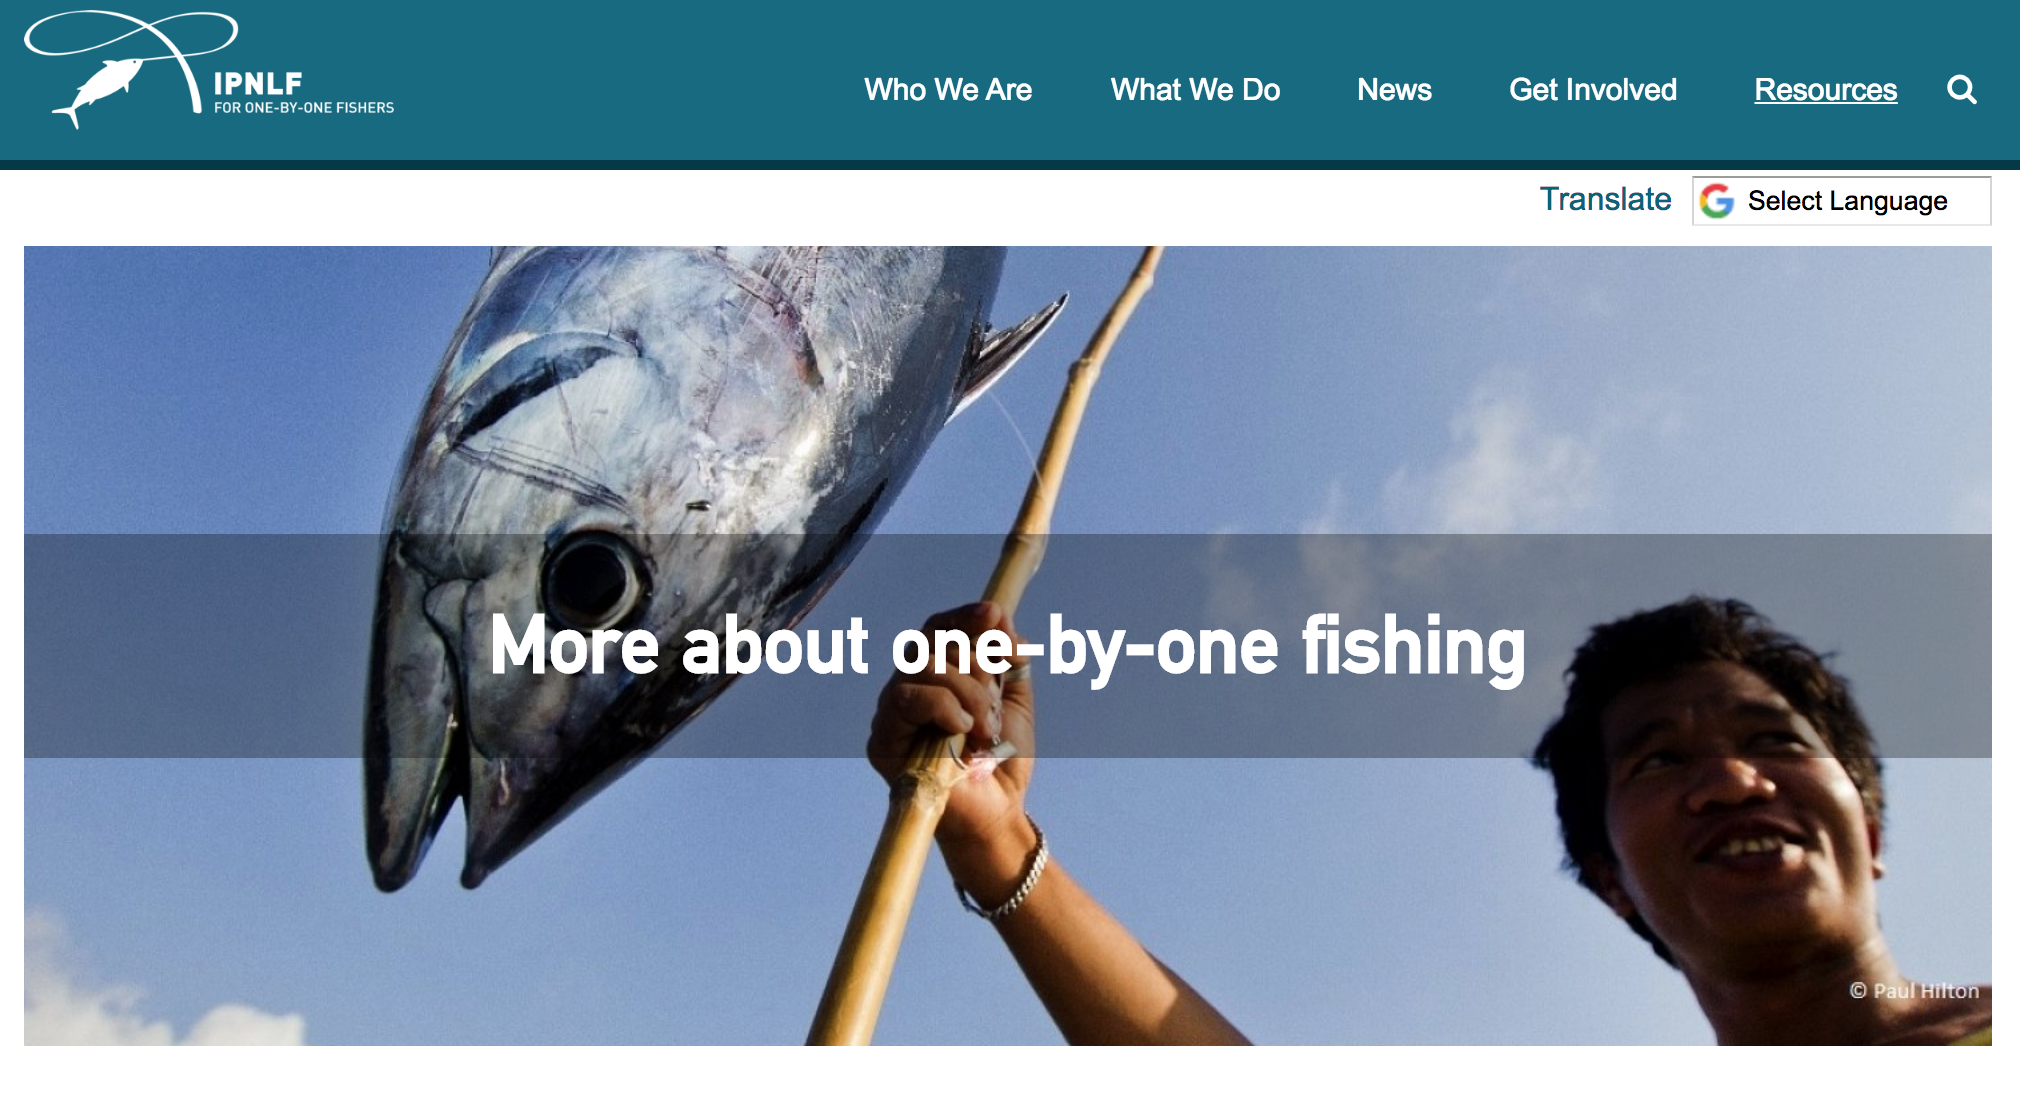 Screen Shot 2019-02-01 at 07.47.47.png